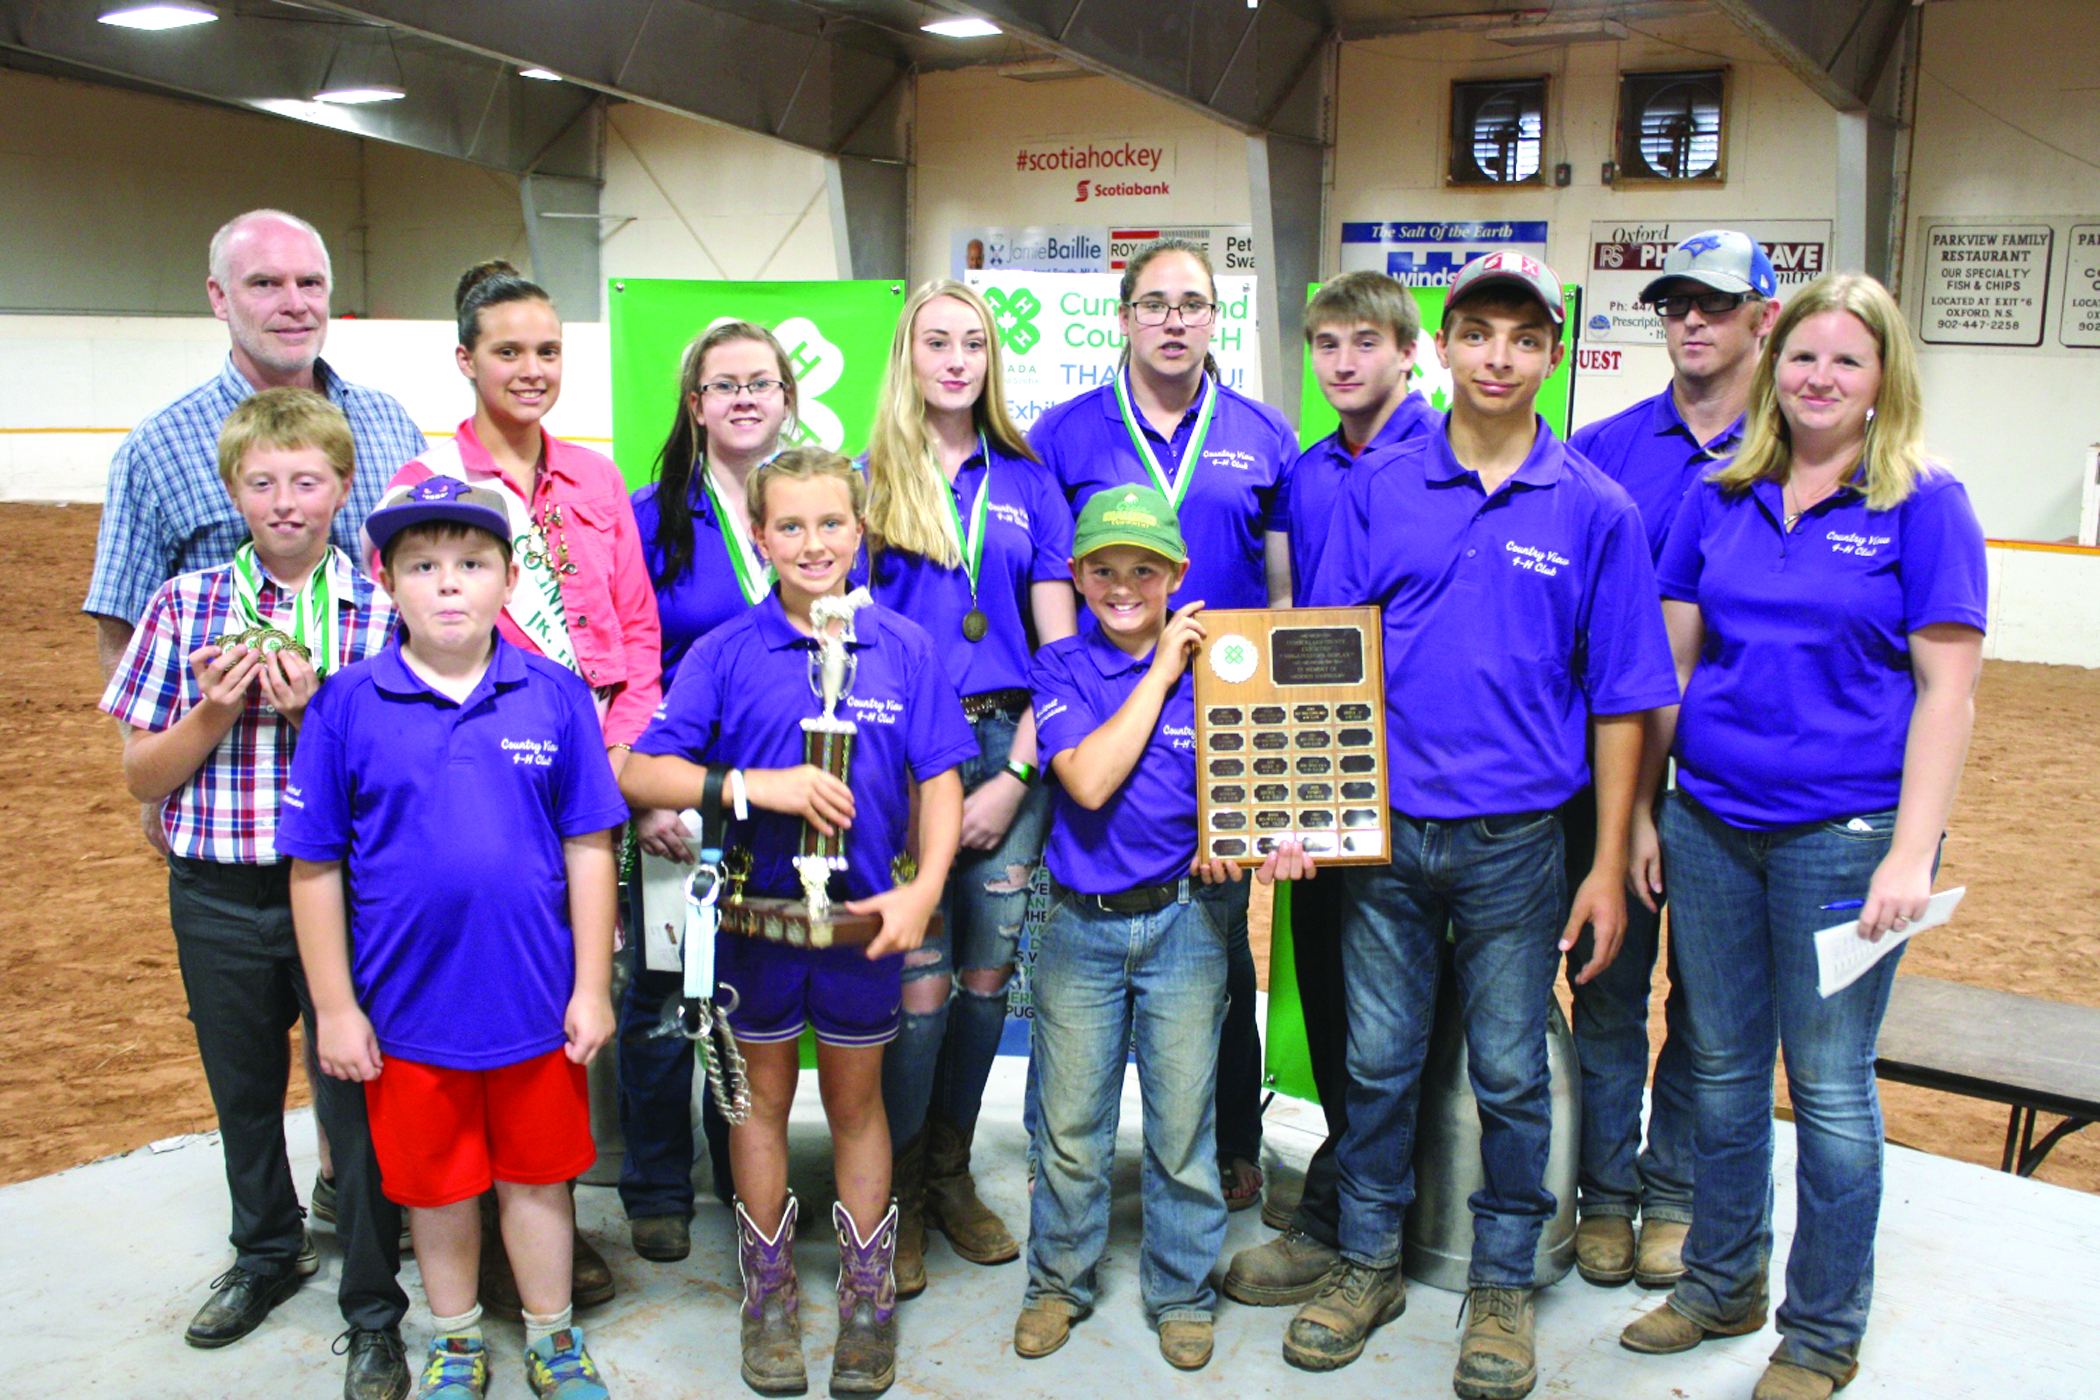 Country View 4-H Club members and leaders at the Cumberland County Exhibition. (Submitted photo)